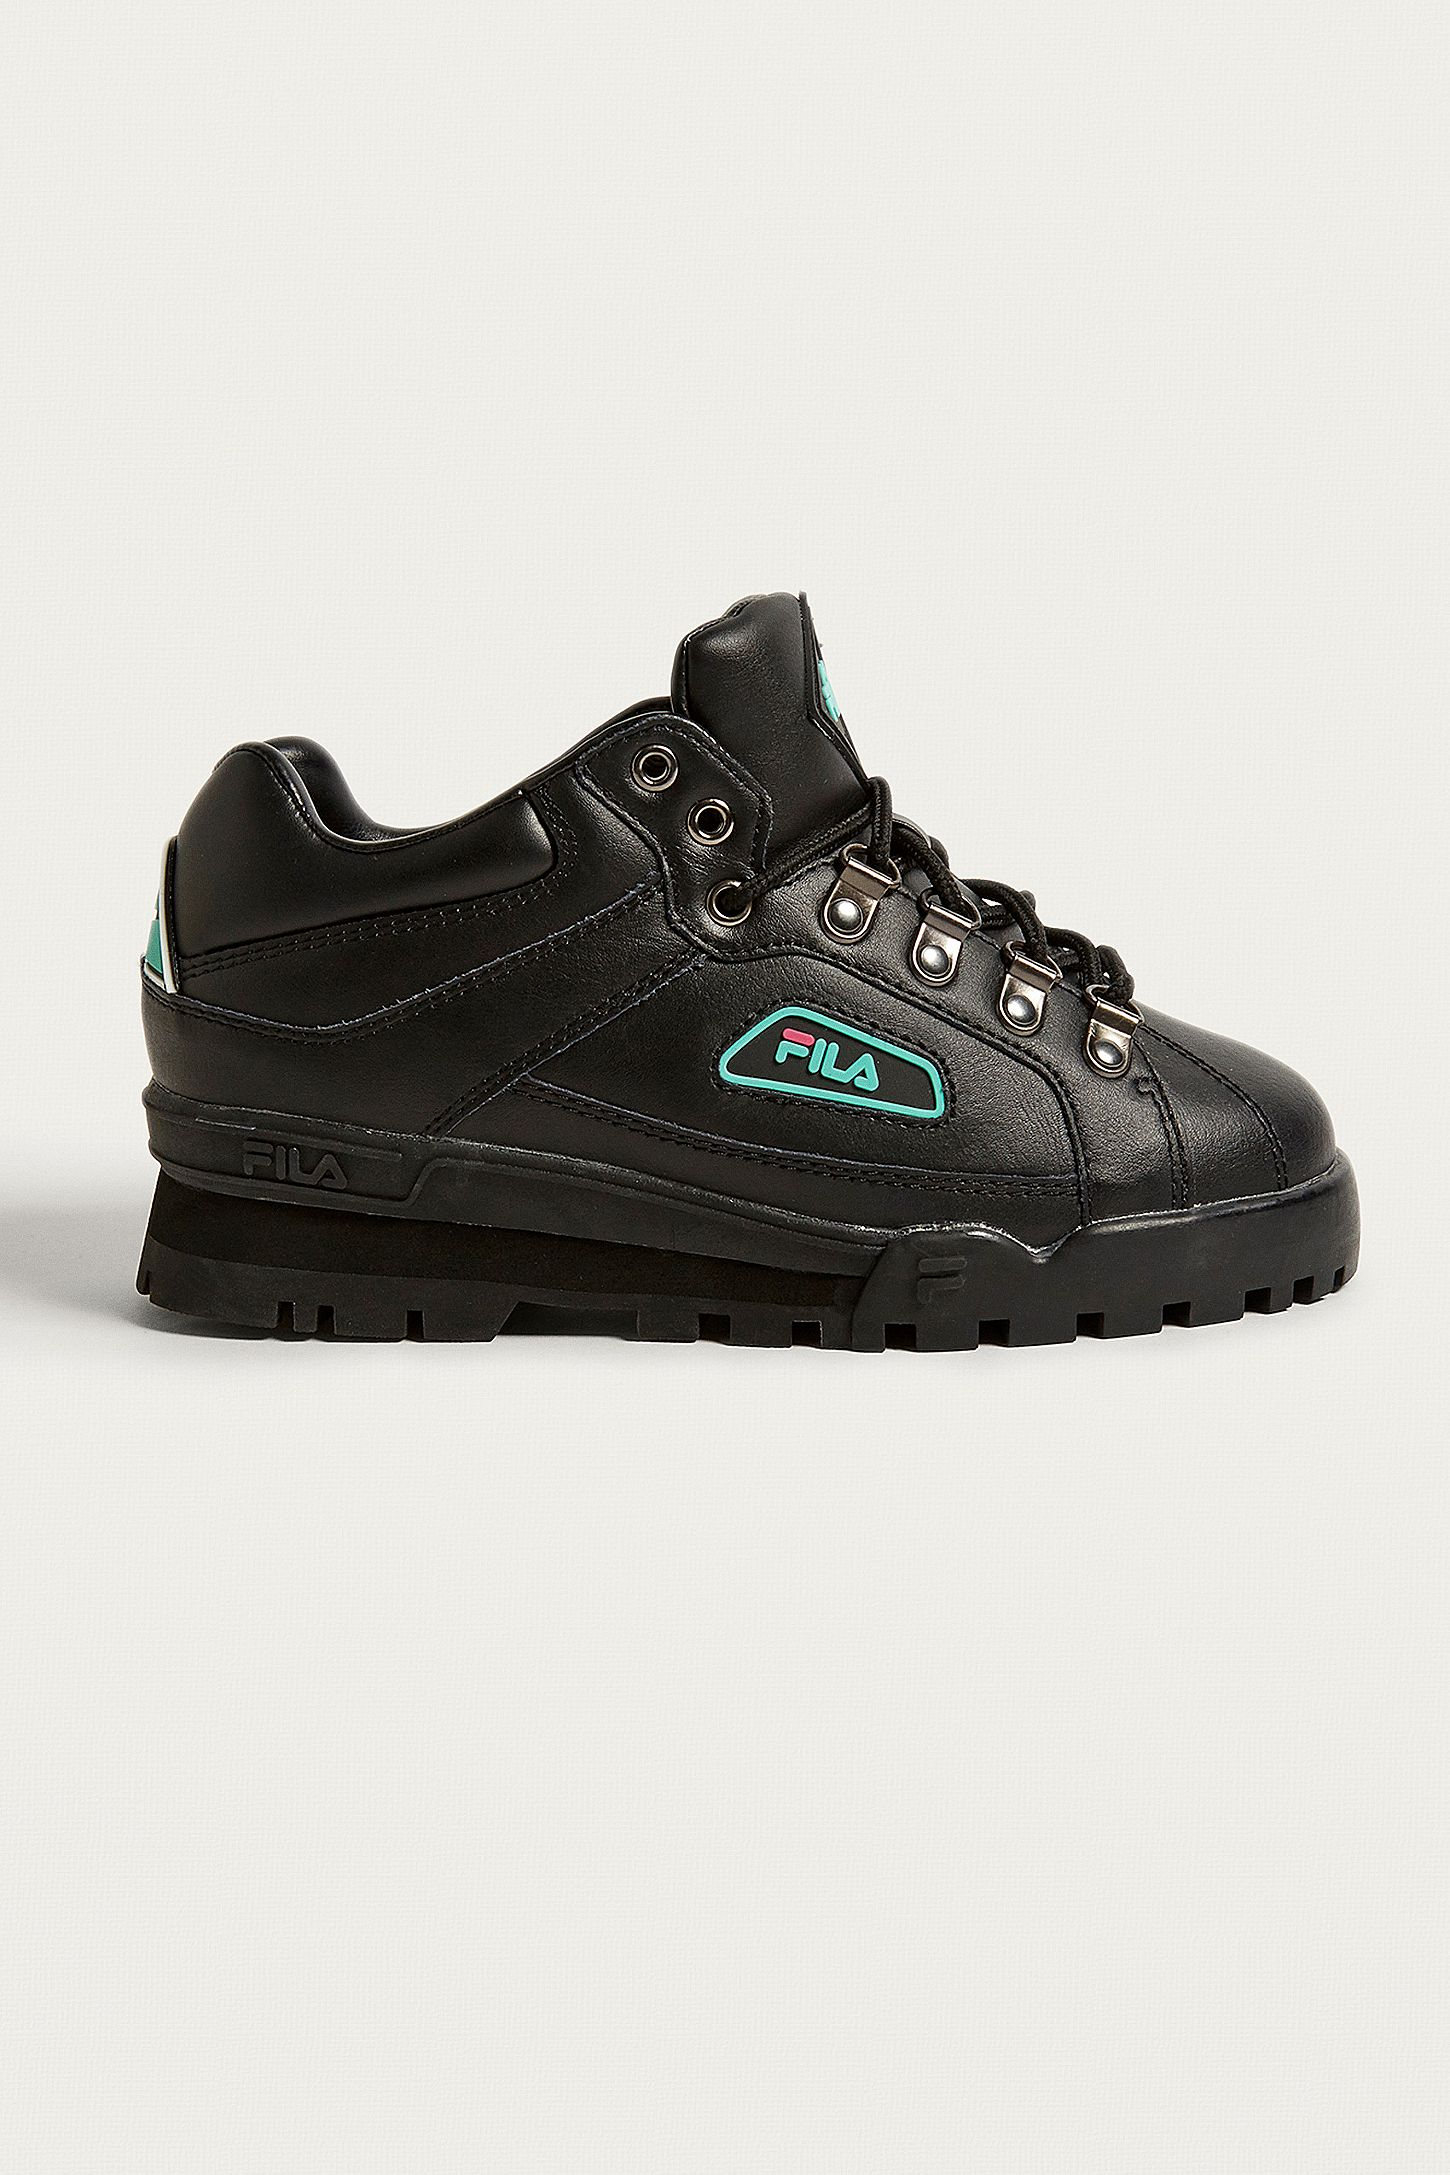 4b81b94e5ac2 FILA Black   Turquoise Trailblazer Boots. Click on image to zoom. Hover to  zoom. Double Tap to Zoom